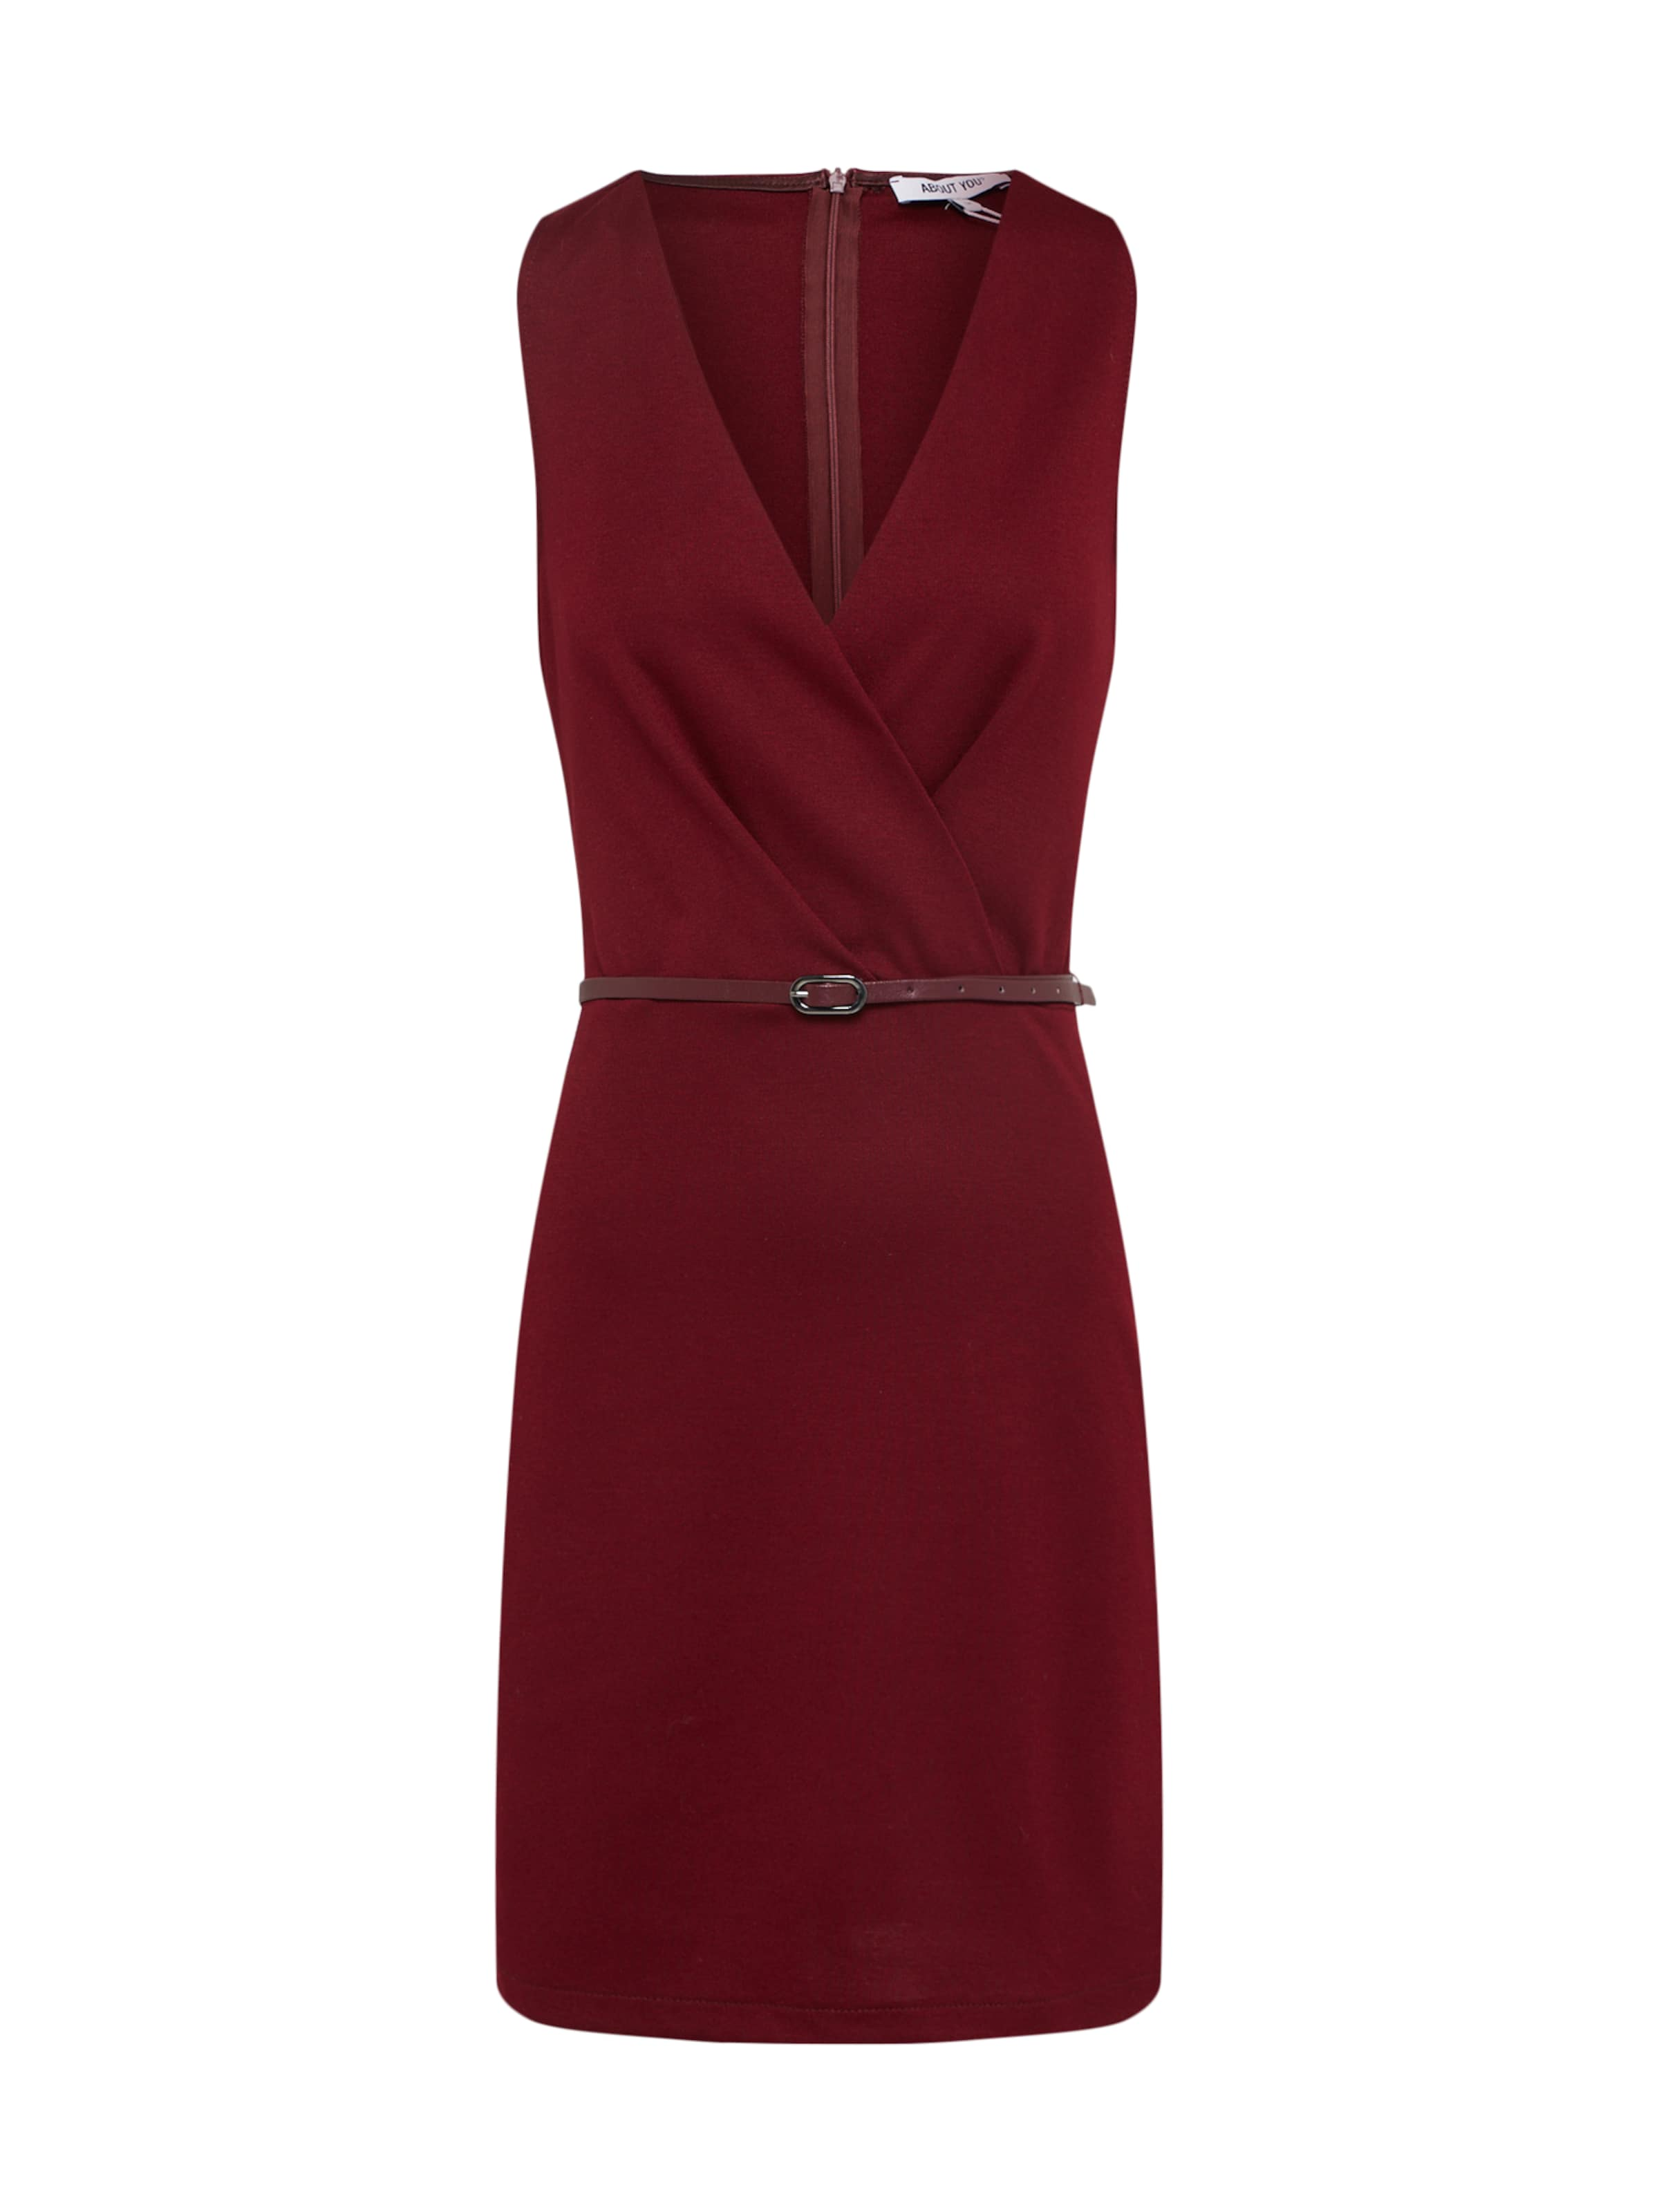 You 'ludmilla Dress' About En Bourgogne Robe 5RL3Aqj4